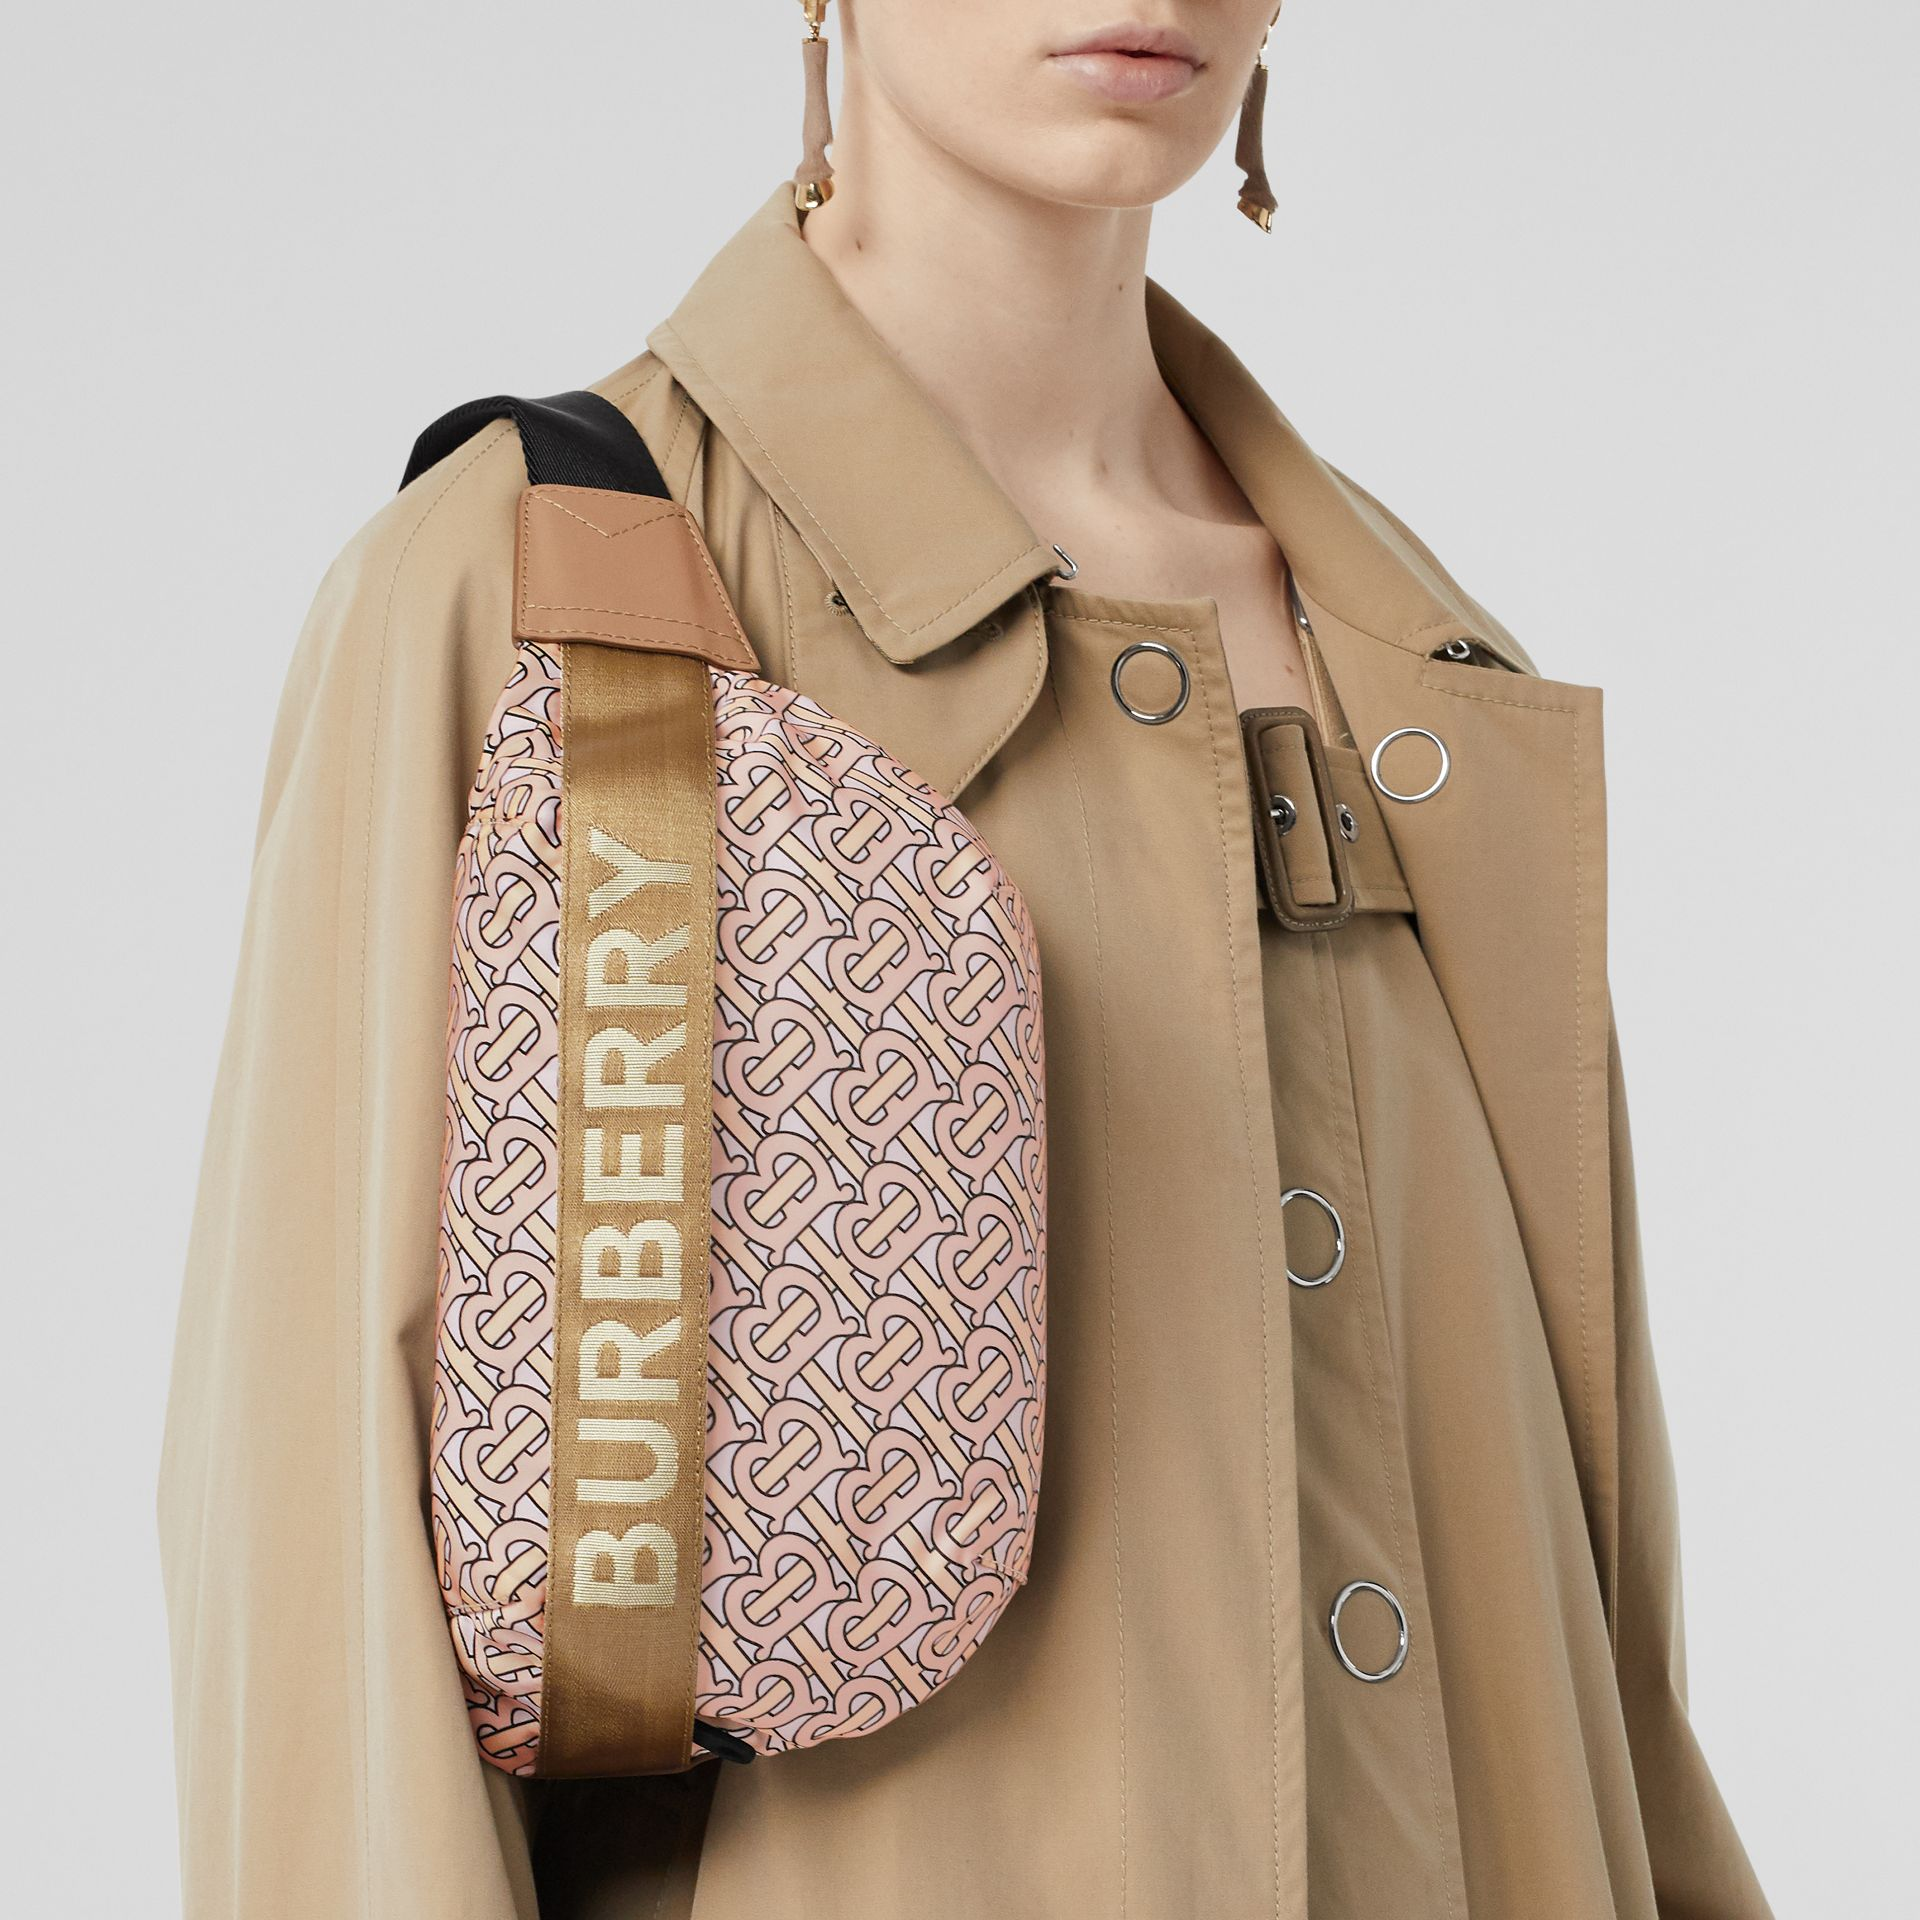 Medium Monogram Print Bum Bag in Blush | Burberry Hong Kong - gallery image 6